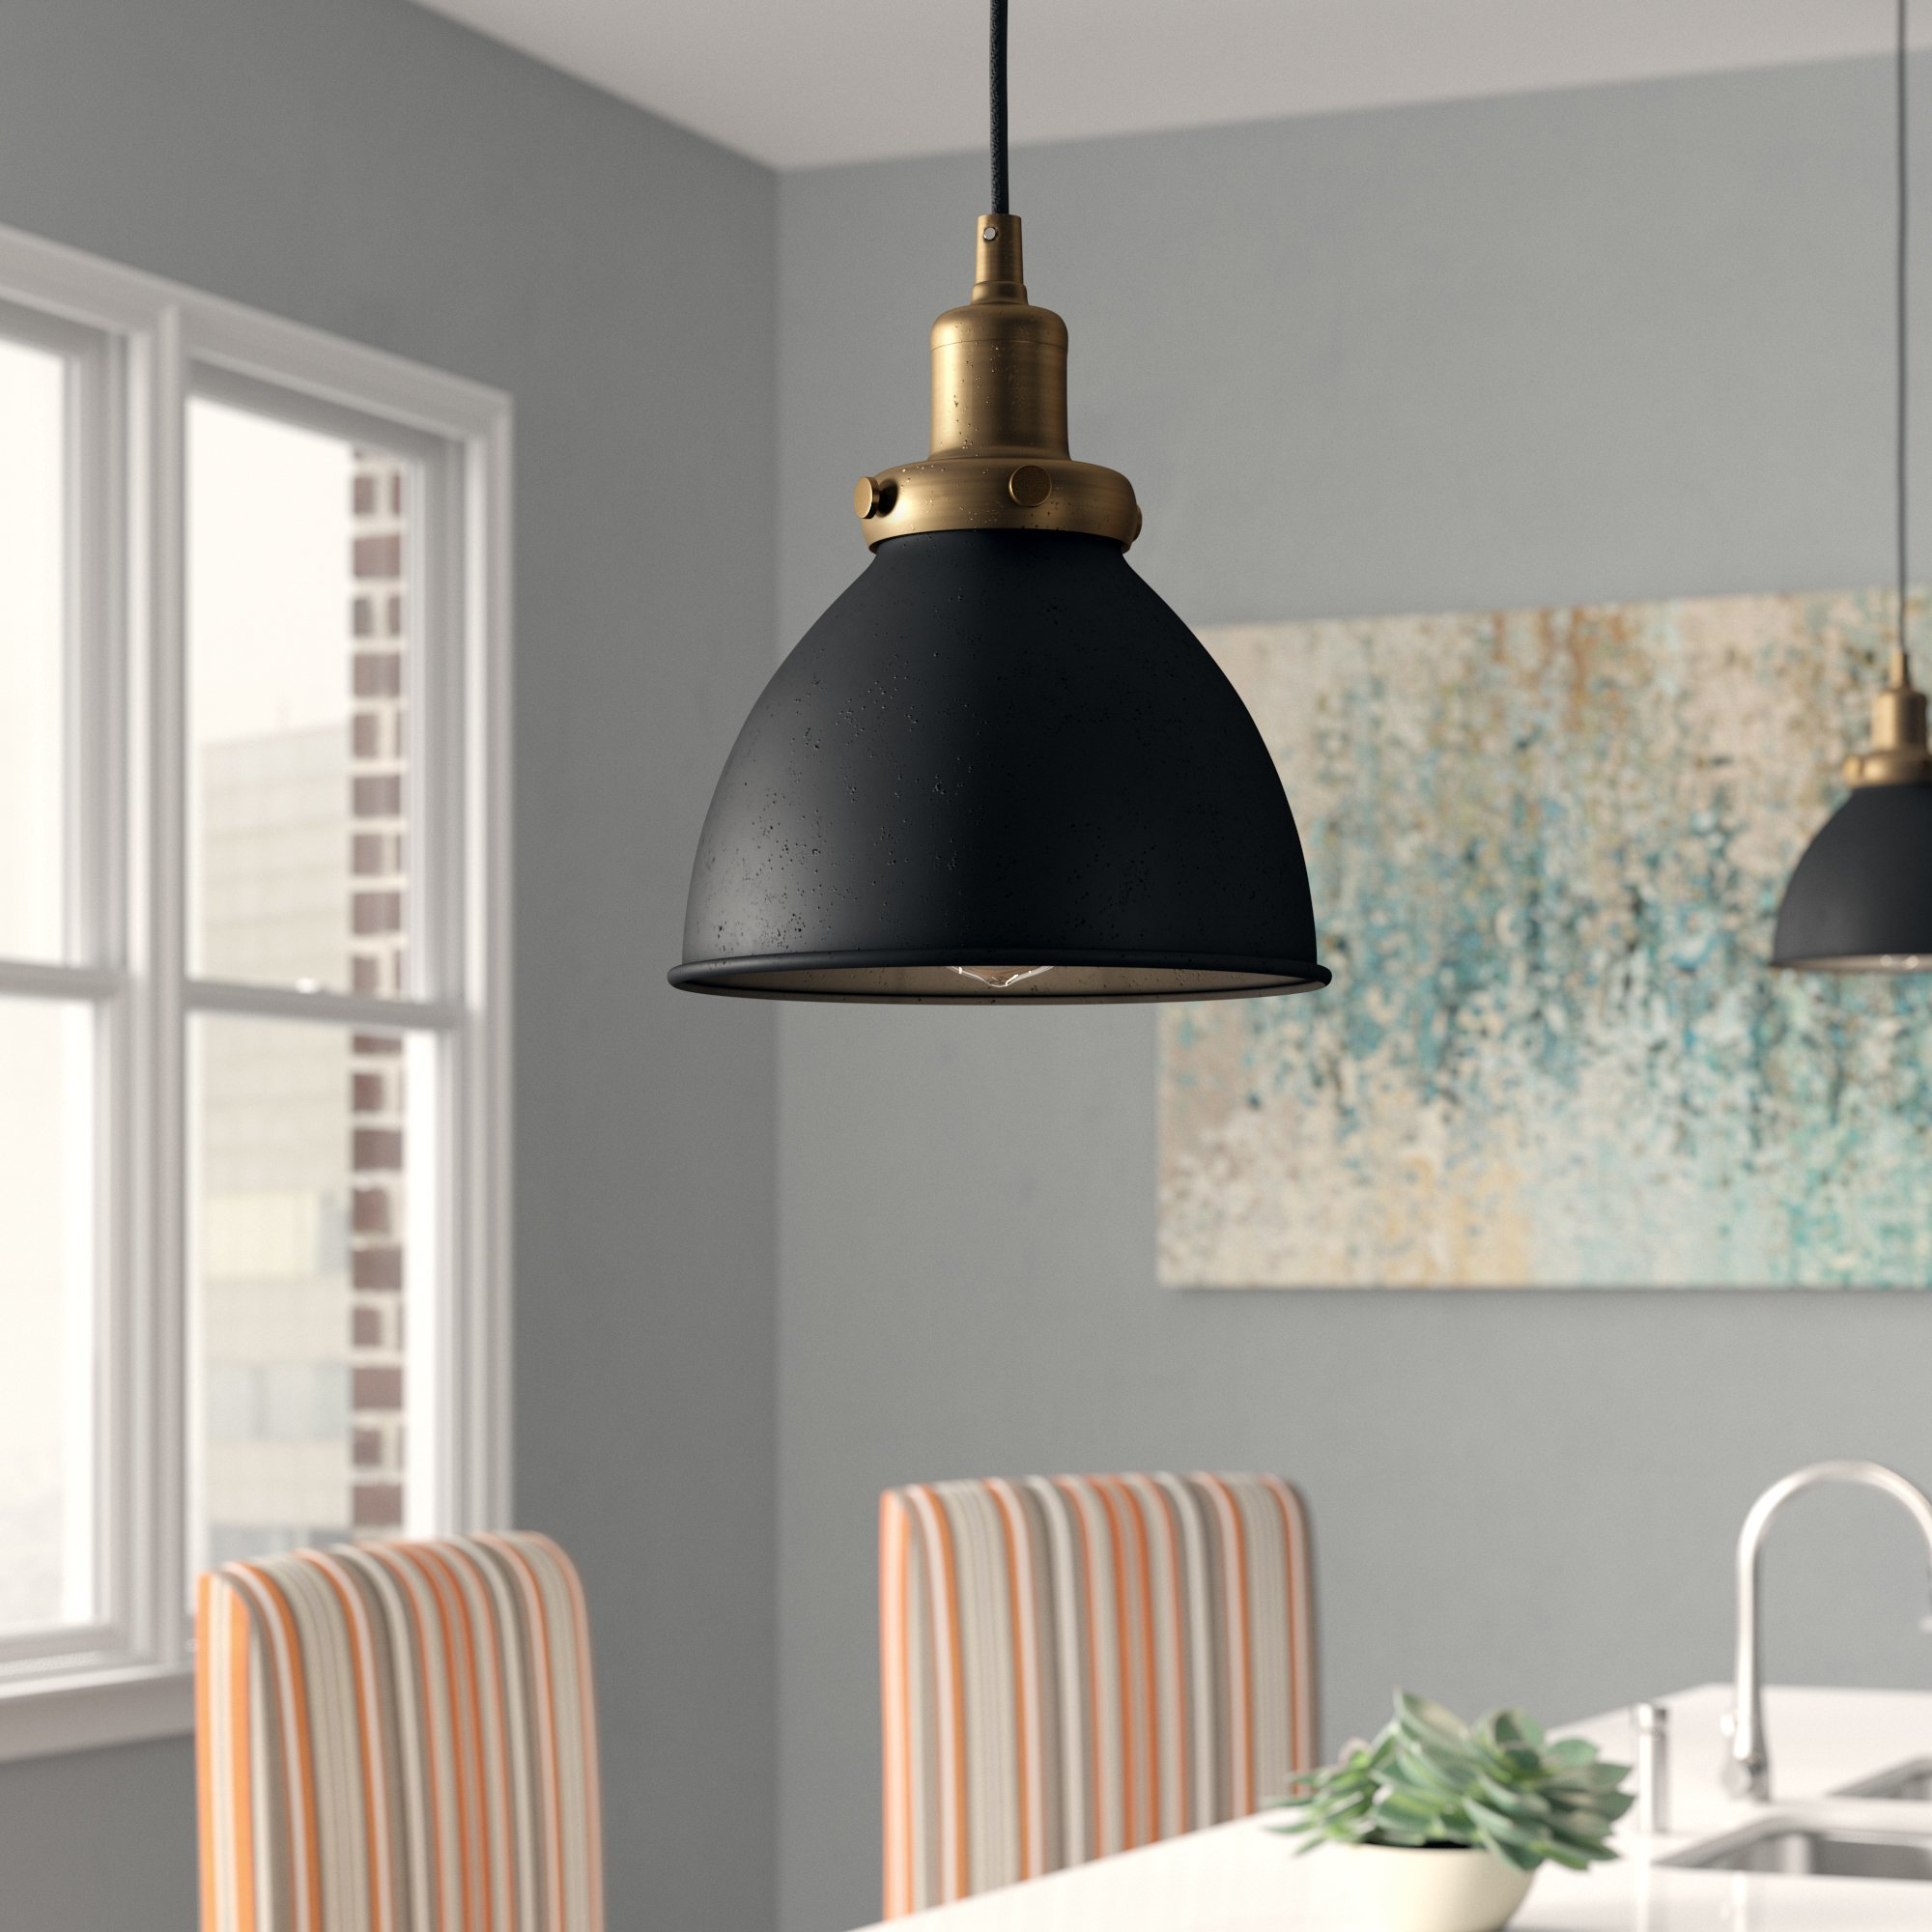 Bodie 1 Light Bell Pendant With Regard To Widely Used Abernathy 1 Light Dome Pendants (View 9 of 25)